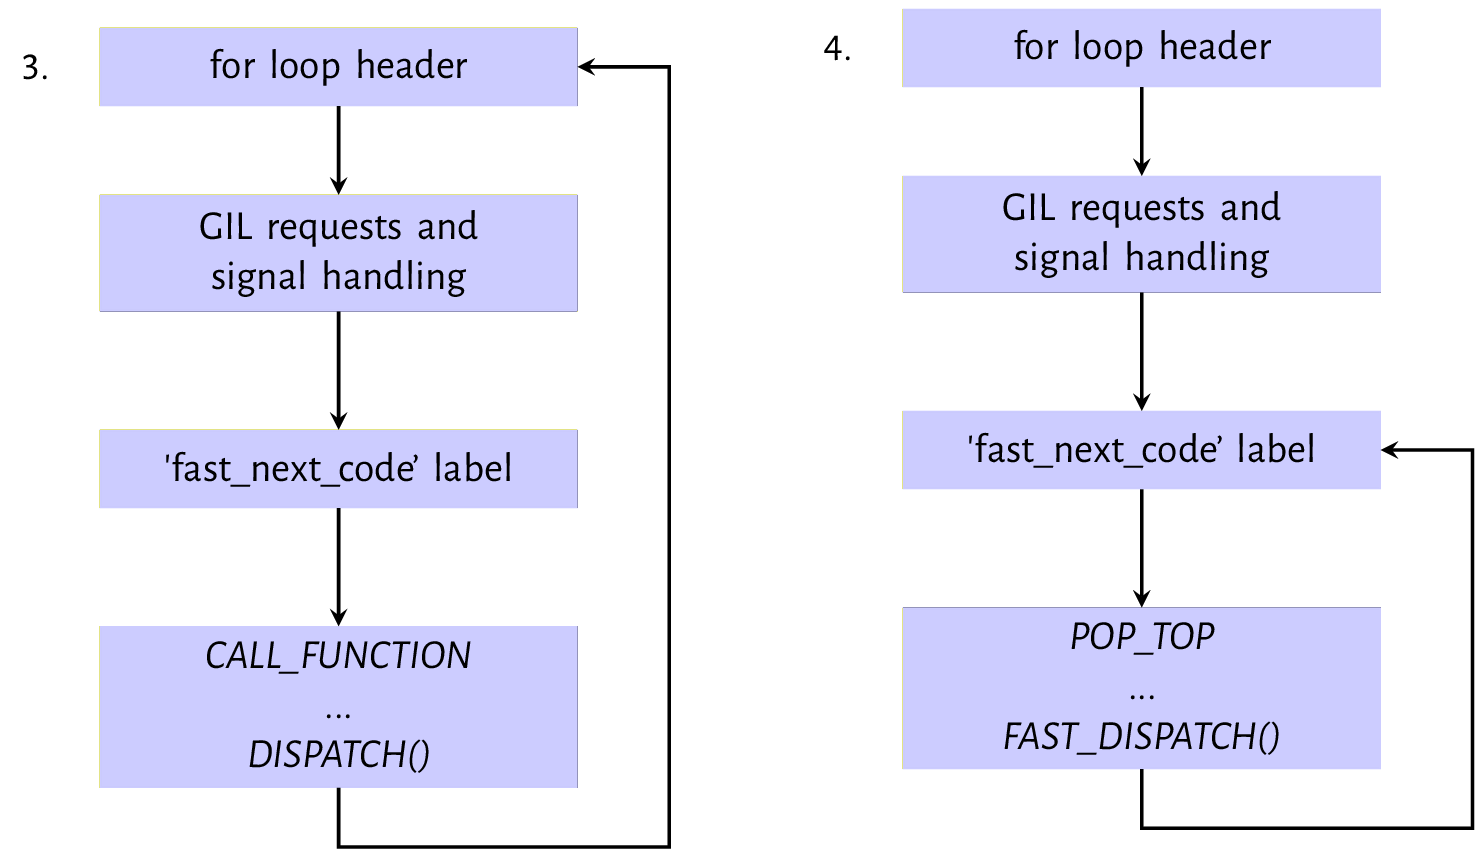 Figure 9.2: Evaluation path for `CALL_FUNCTION` and `POP_TOP` instruction